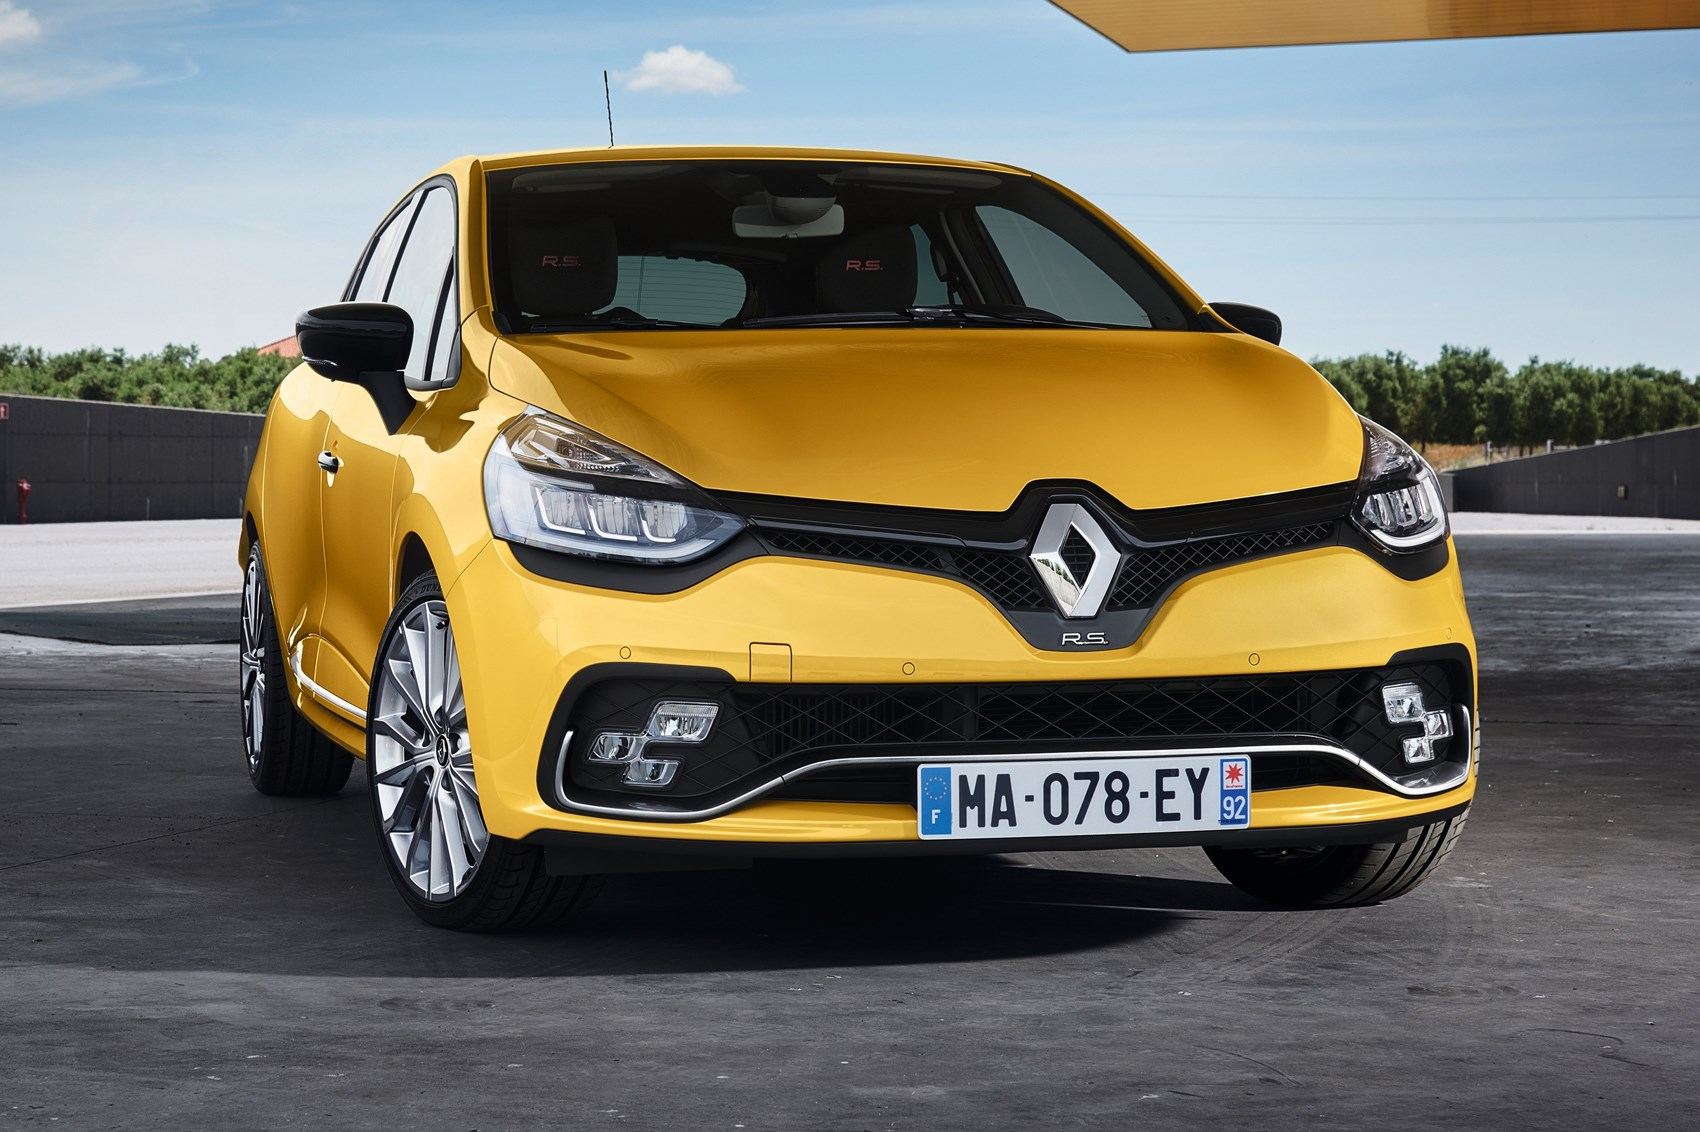 renaultsport clio rs gets more lightbulbs and a fancy. Black Bedroom Furniture Sets. Home Design Ideas